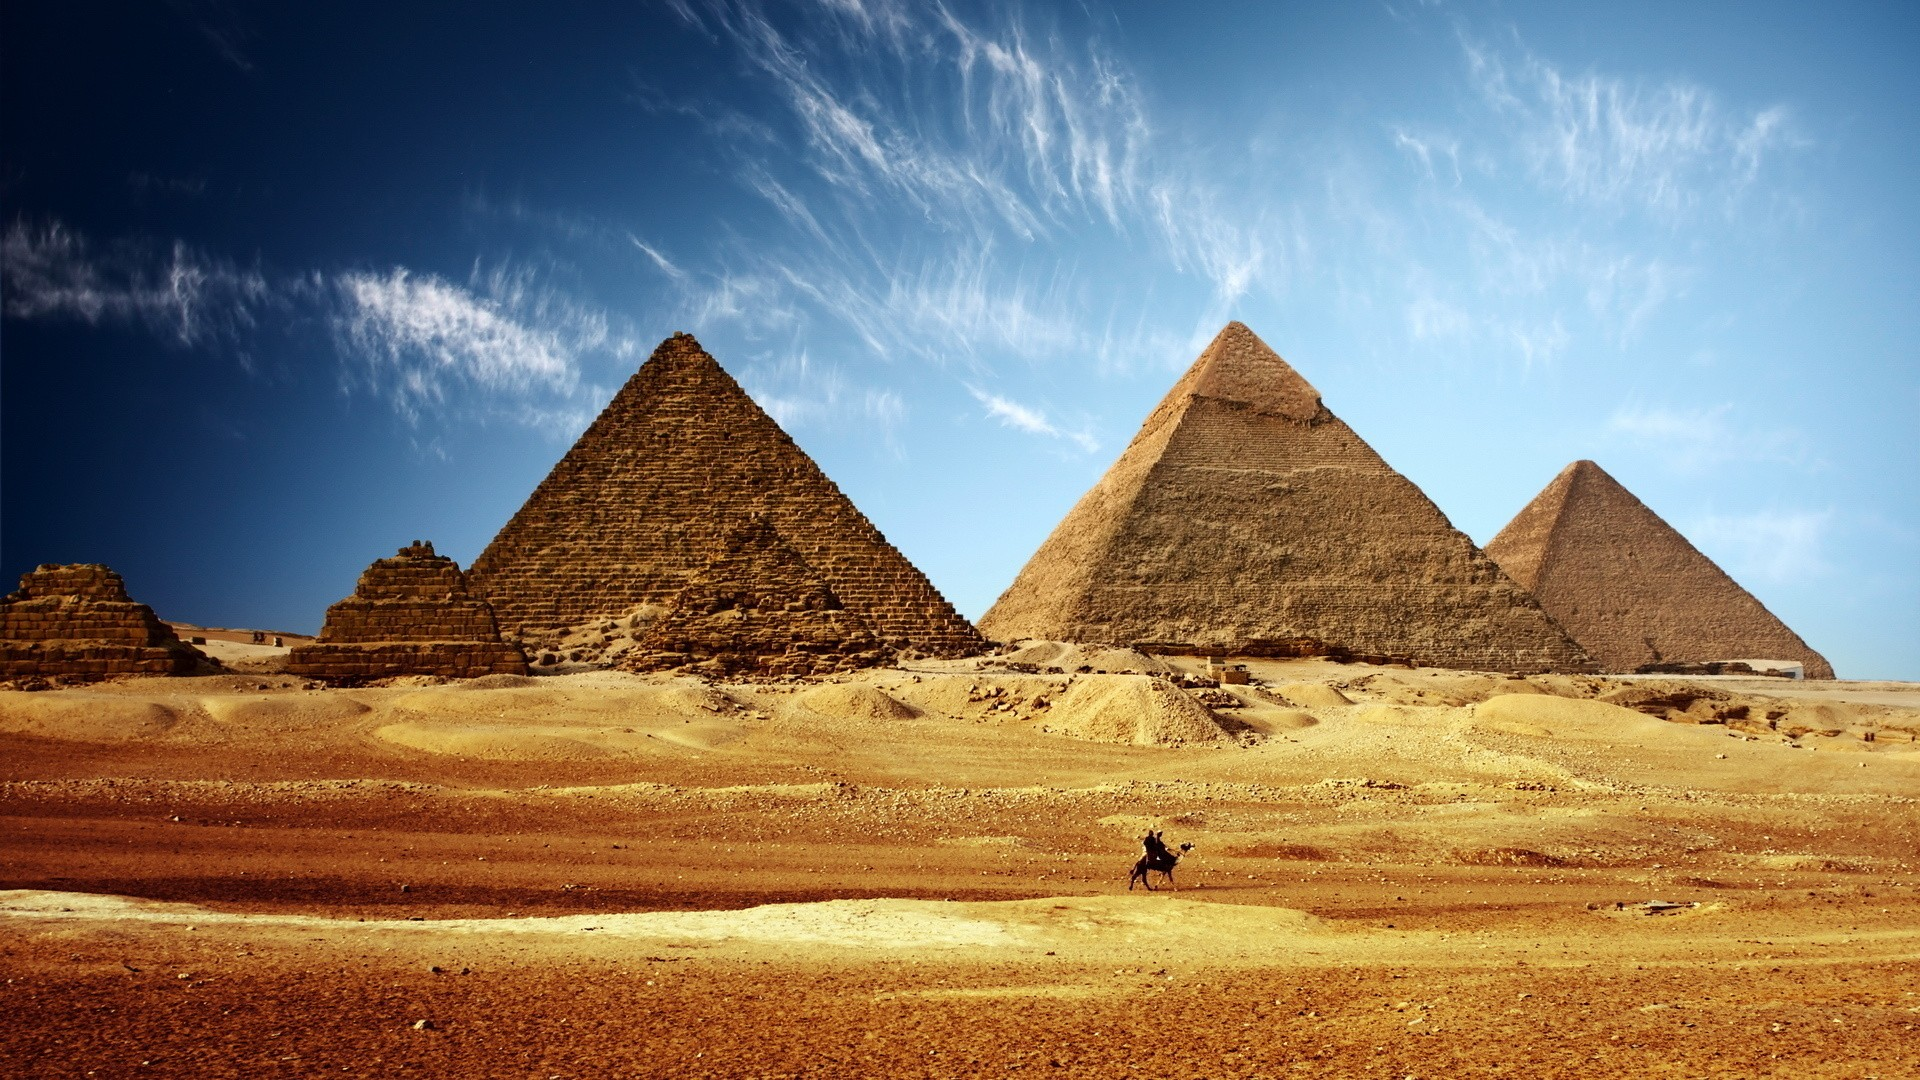 Pyramids in Egypt Desert 1698.98 Kb